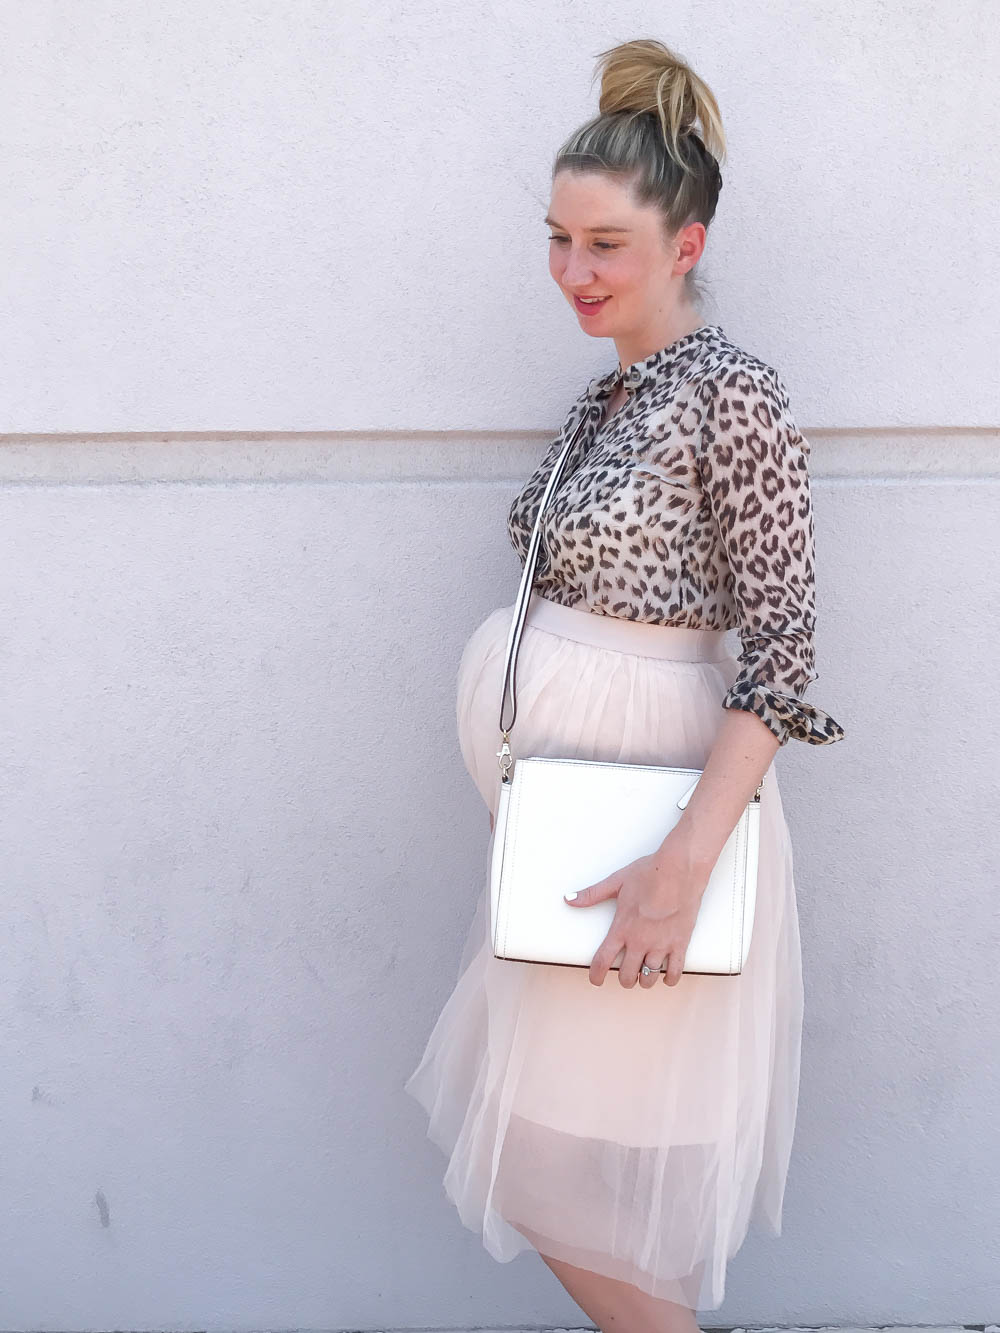 Tulle Maternity Skirt and Leopard Top | Maternity Clothes | Bump Style Summer | Maternity Fashion | Bump Style | Shop Pink Blush Maternity